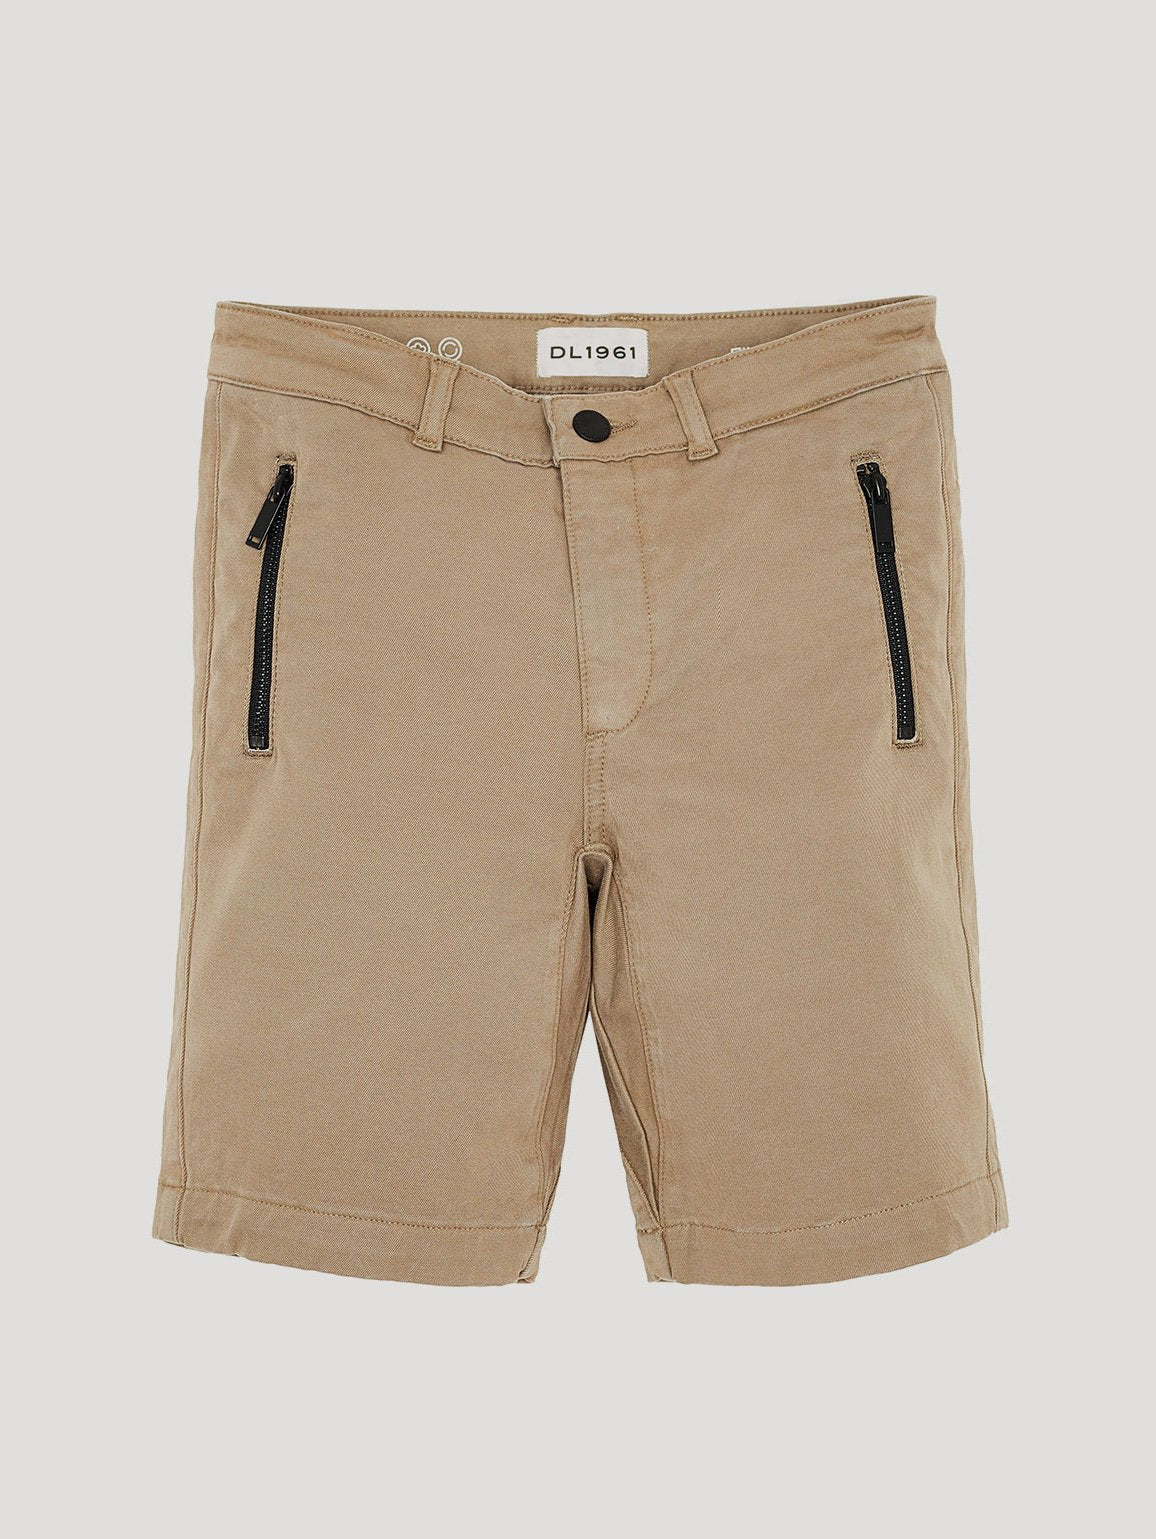 Image of Finn/B Drop Crotch Chino Short / Hutch